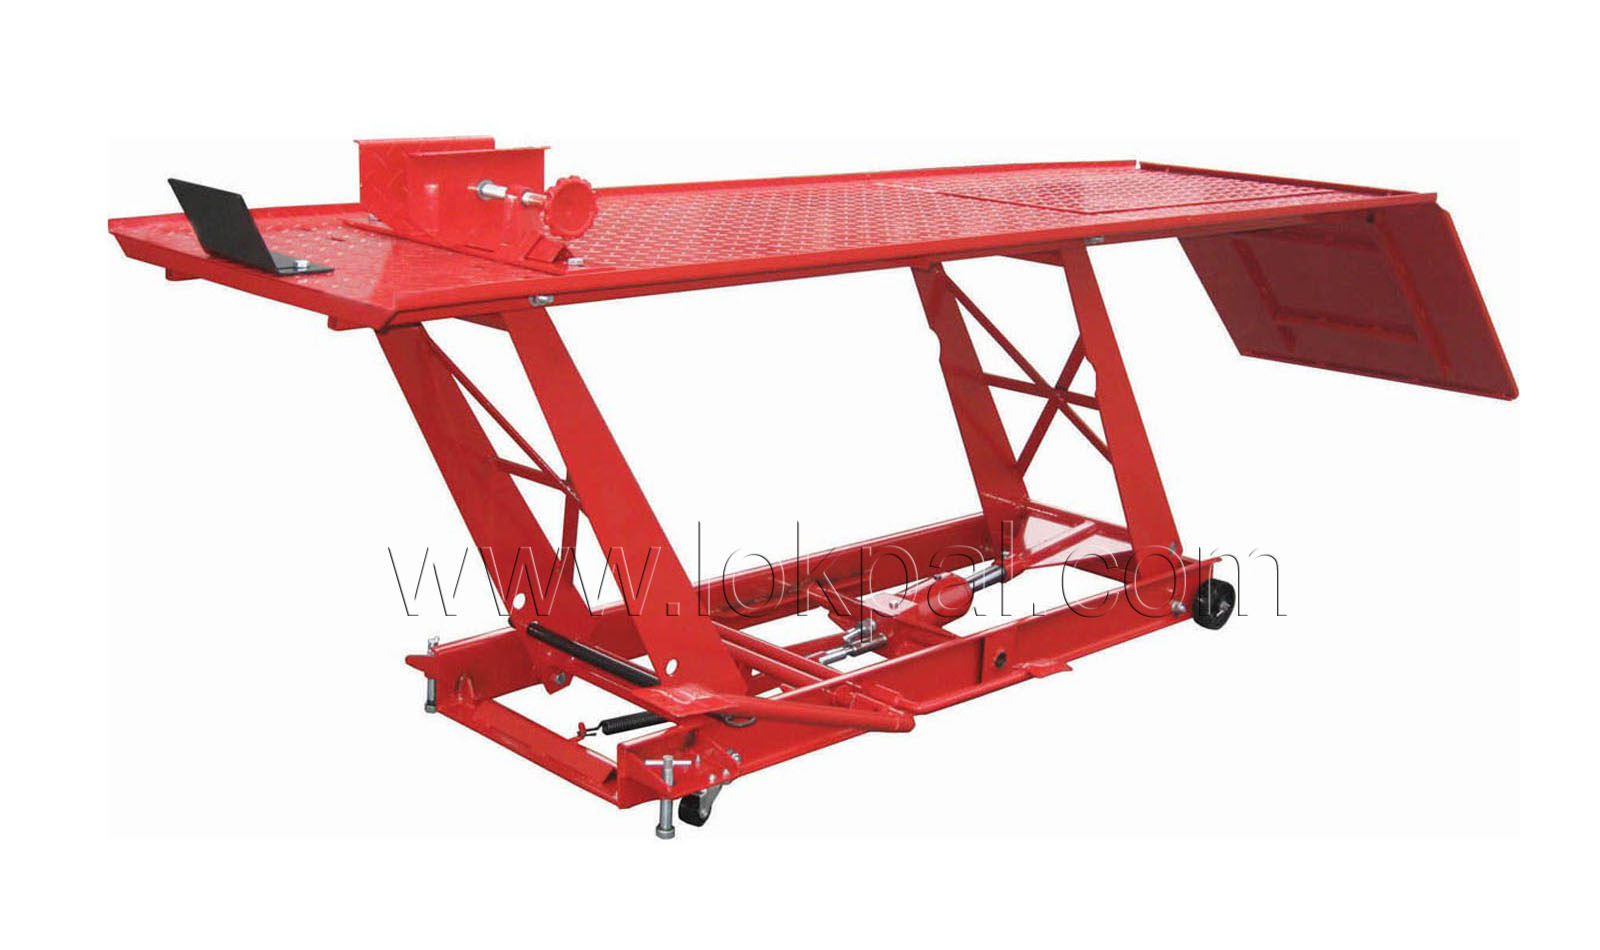 Motor Cycle Liftable, Motor Cycle Lift Table Manufacturer, Supplier, India